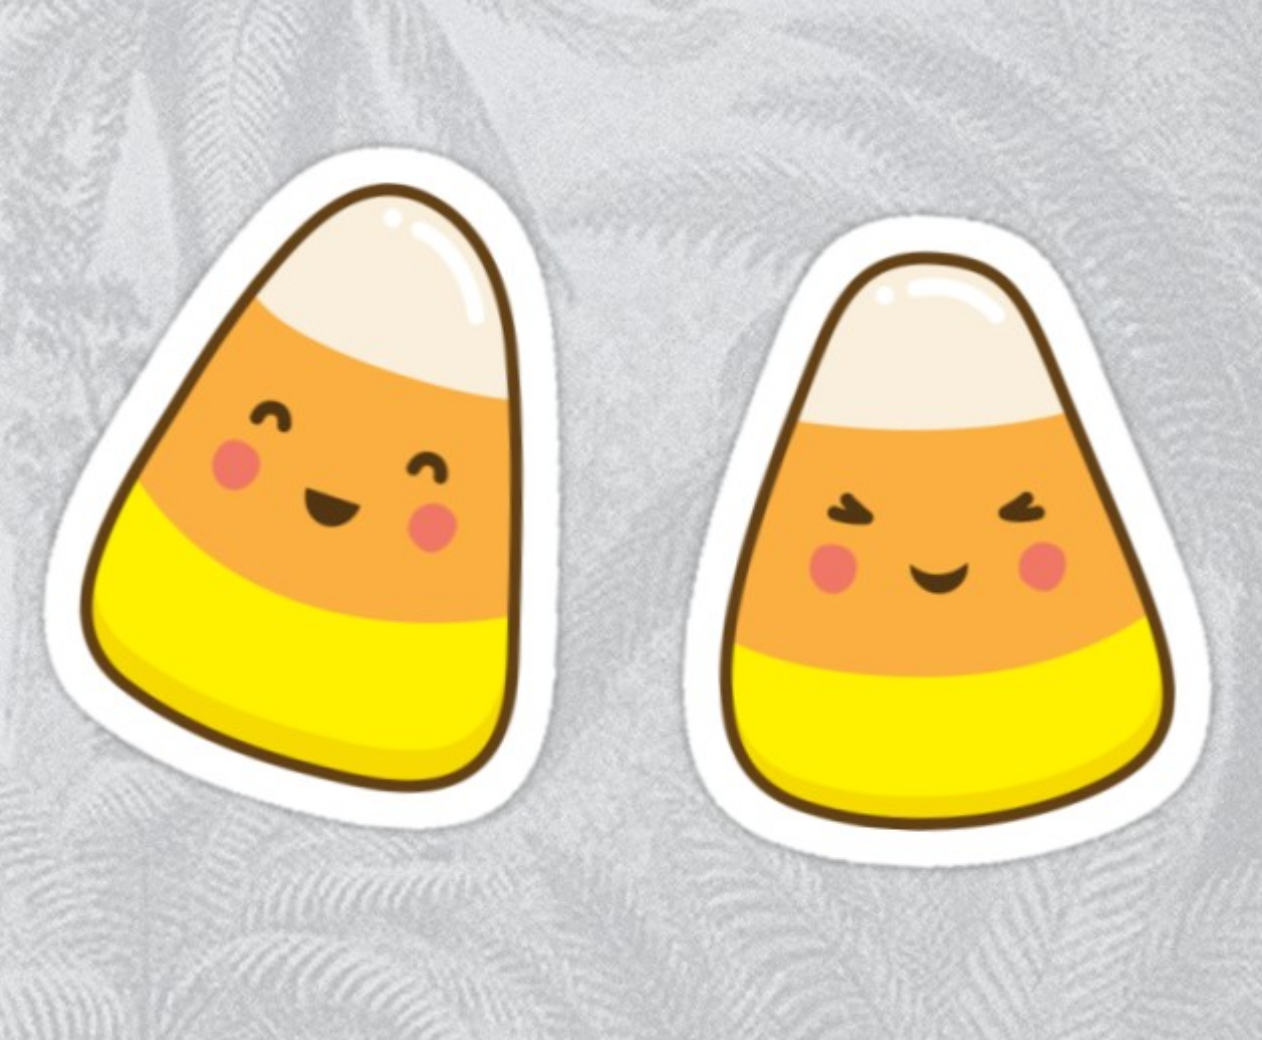 Cute Kawaii Style Candy Corn Sticker By Mheadesign Cute Stickers Vinyl Decals Laptop Stickers